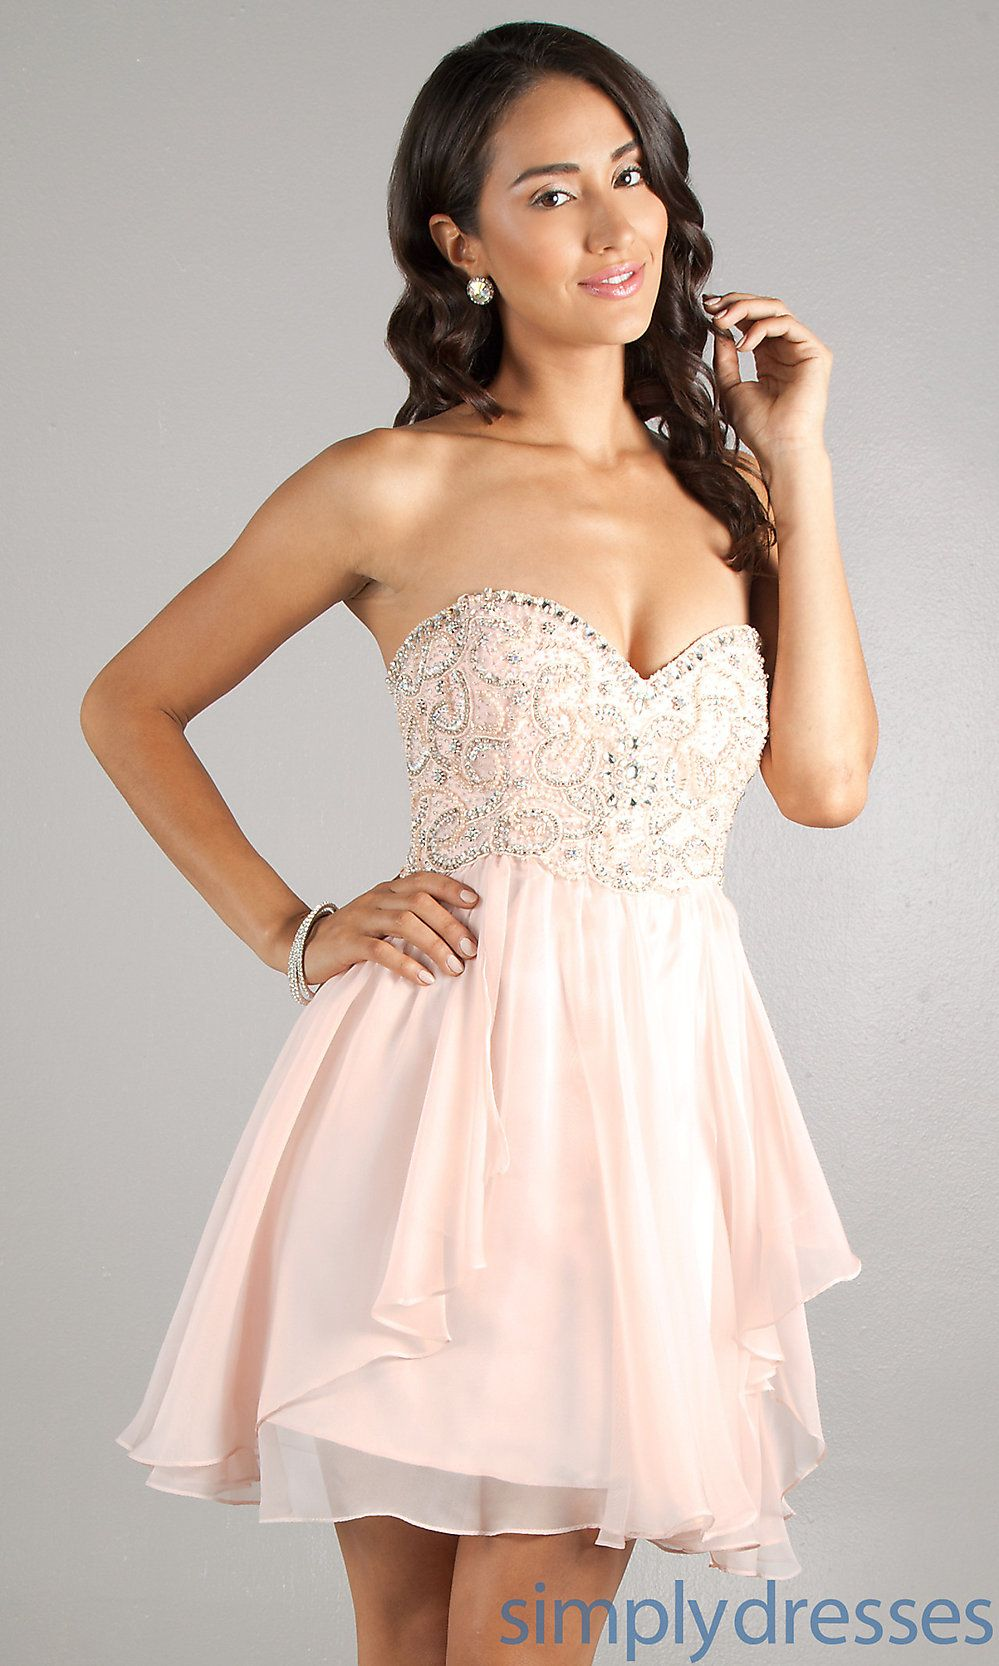 Strapless Party Dress, Babydoll Short Prom Dress - Simply Dresses ...